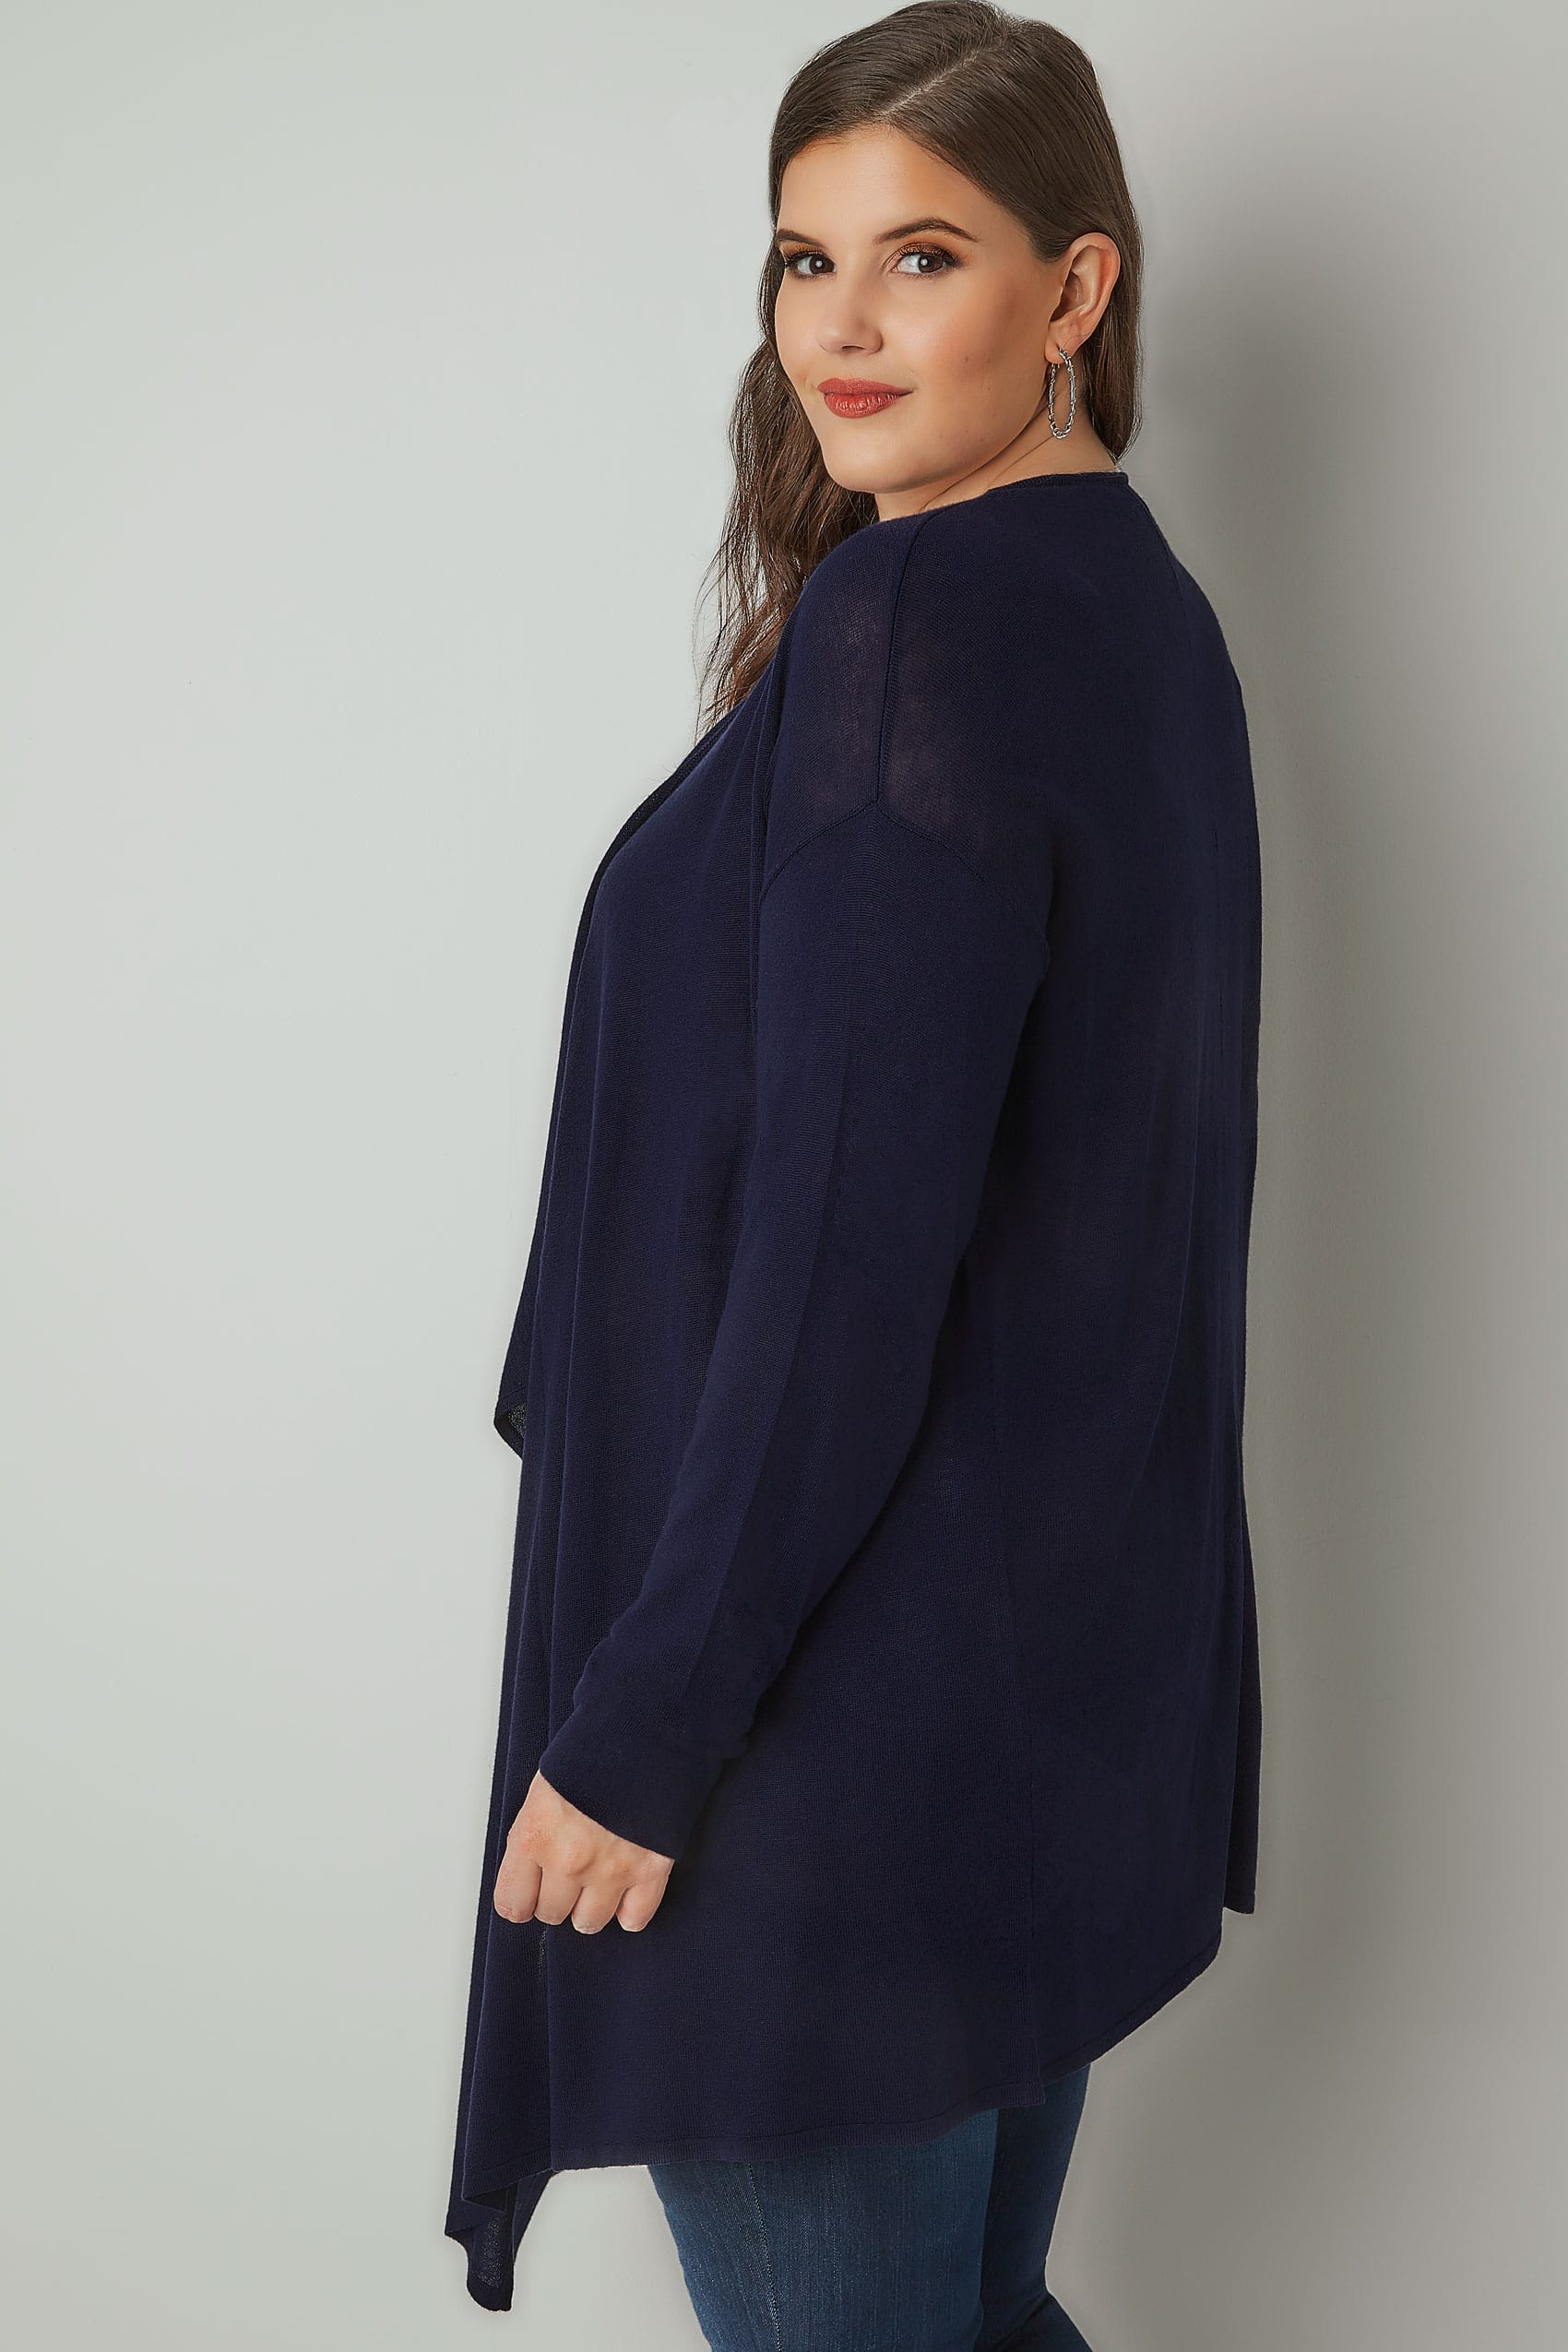 Navy Longline Waterfall Cardigan, plus size 16 to 36